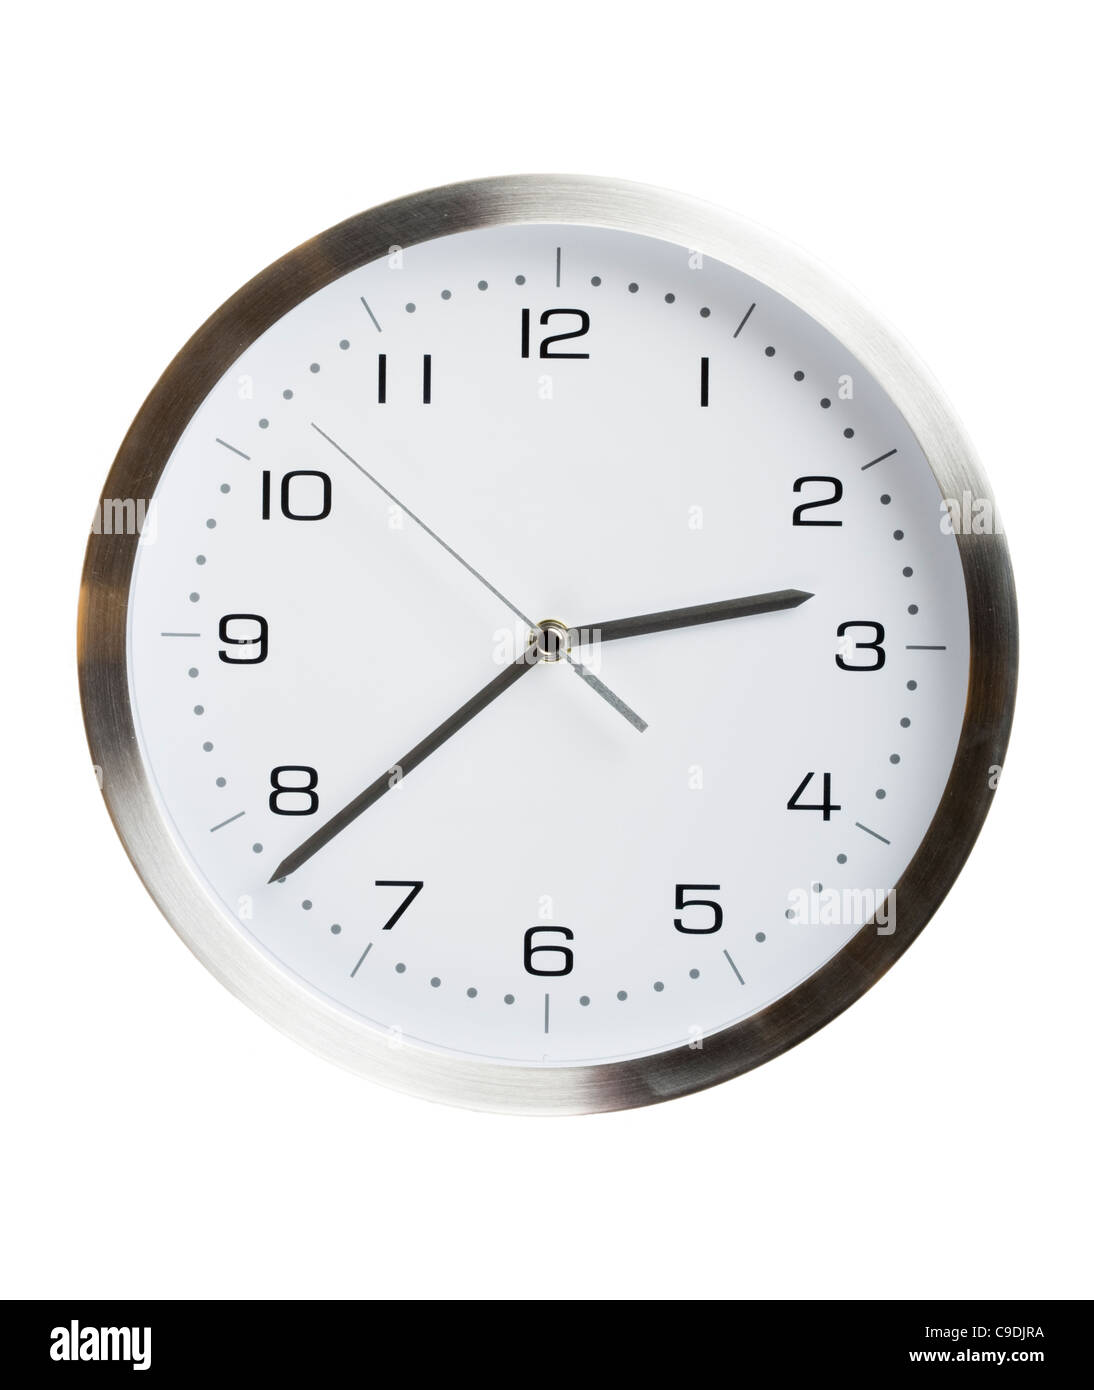 Kitchen clock. - Stock Image